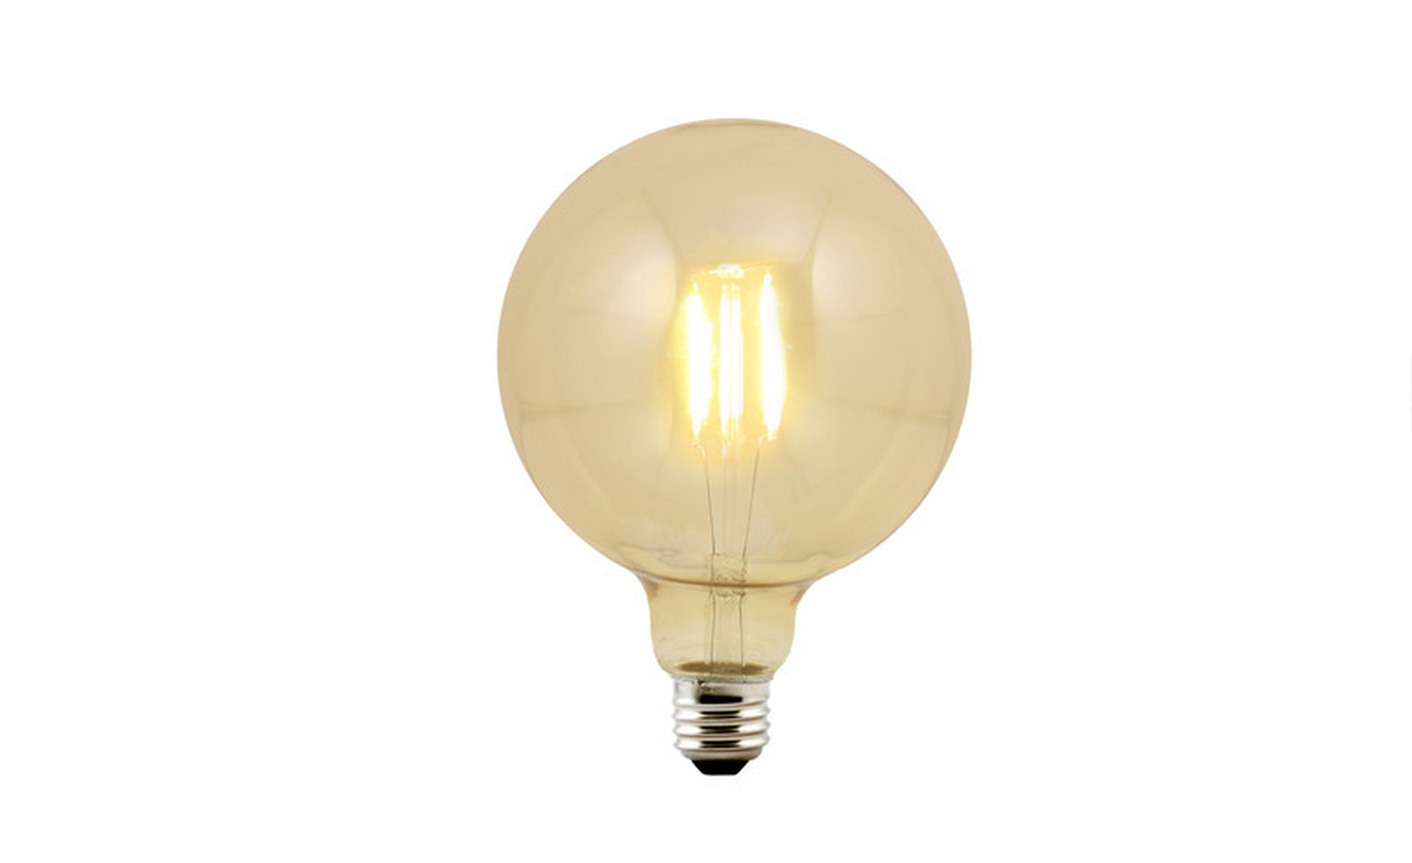 Urban Chandy LED Edison Bulbs